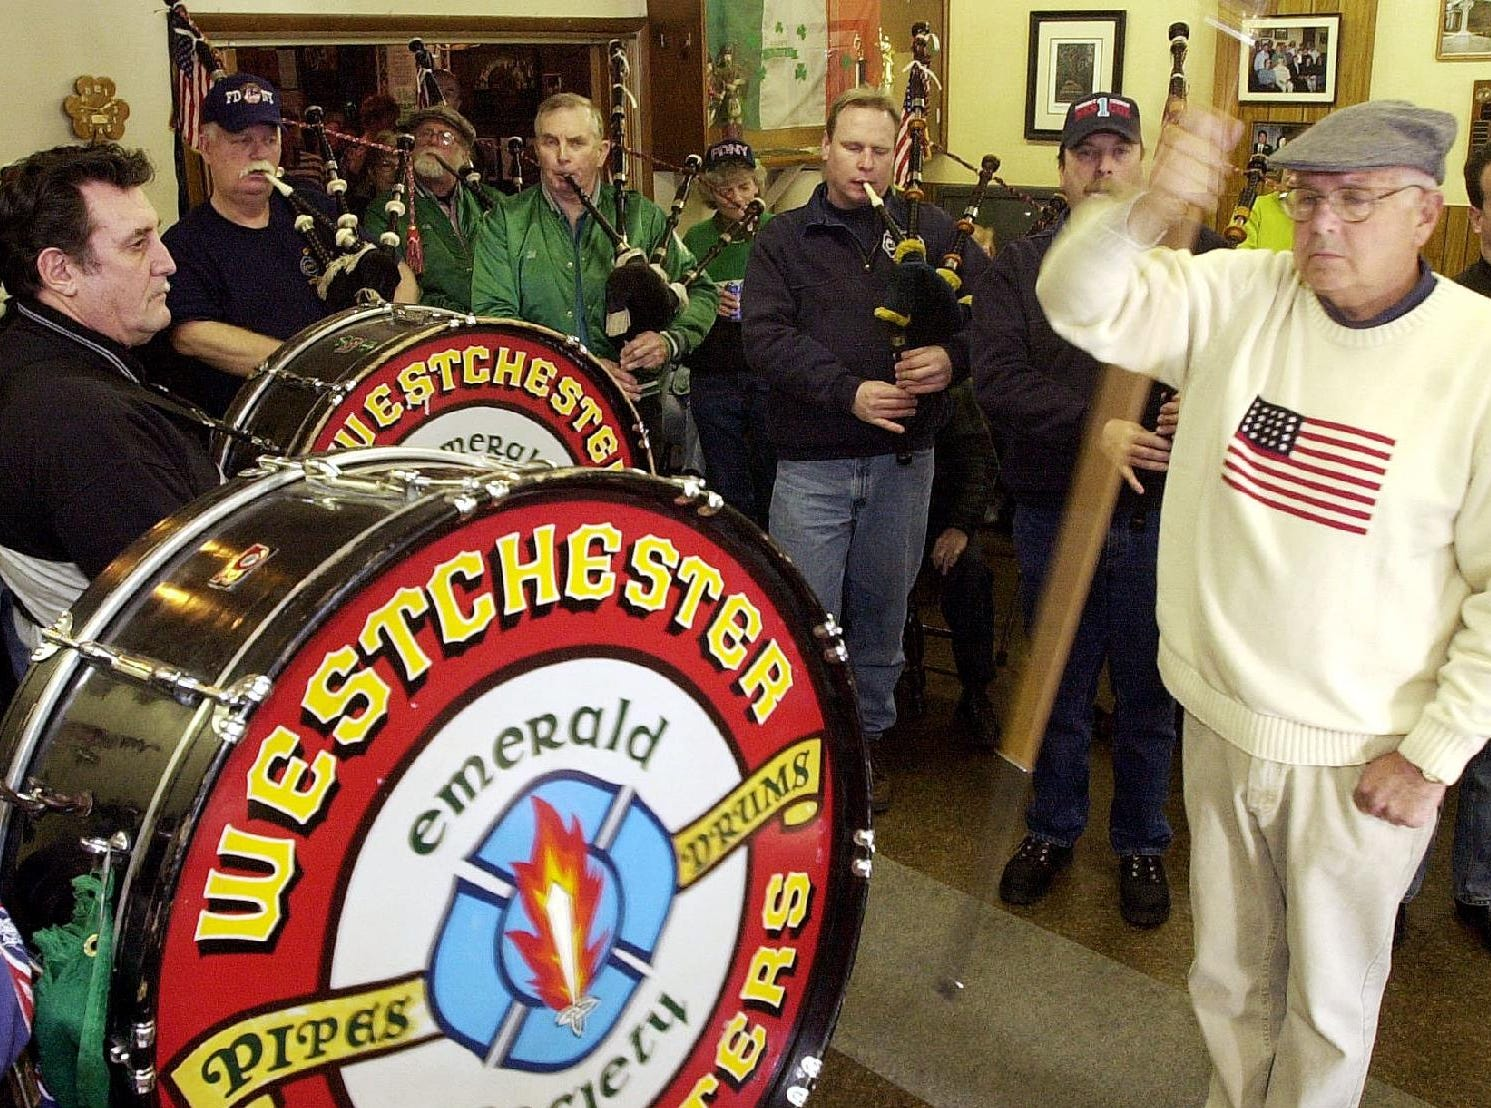 2002: Members of the Pipes and Drums Firefighters Emerald Society of Westchester, led by Drum Major John Cullen, far right, play a few songs at the Ancient Order of Hibernians on Main Street in Binghamton Friday afternoon. They will be one of the bands featured in Saturday's St. Patrick's Day Parade in downtown Binghamton.